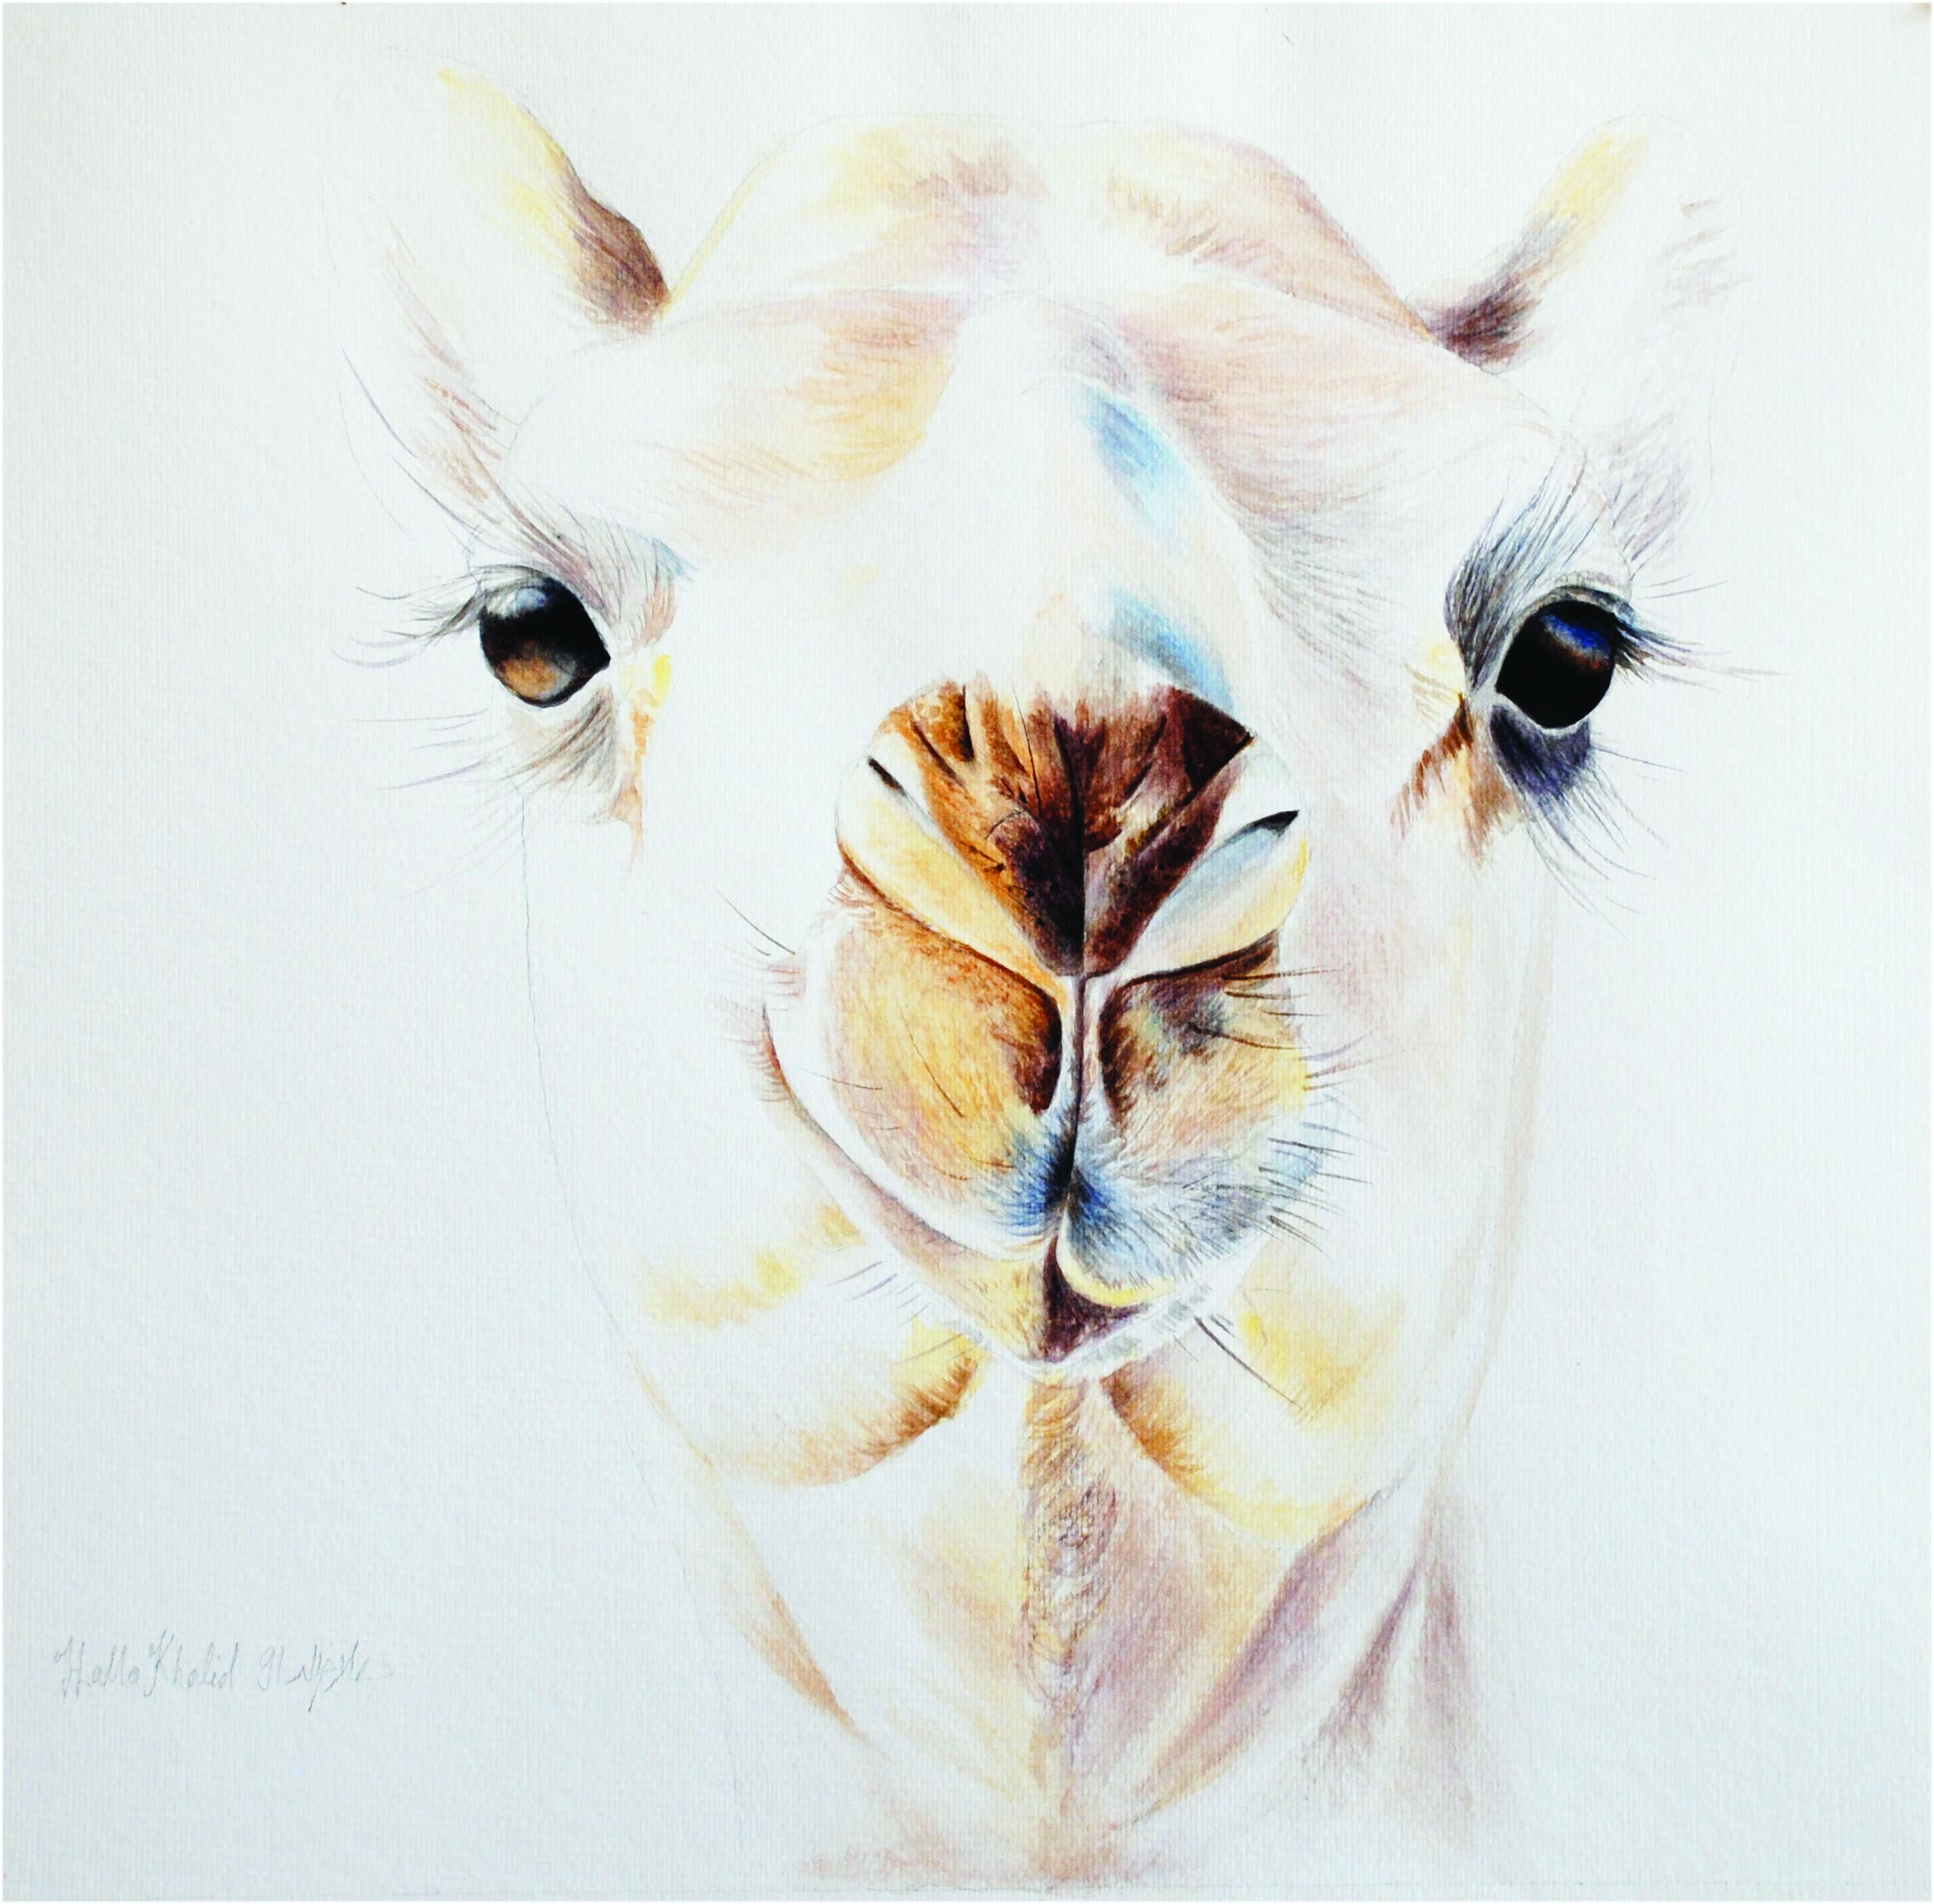 Shagrah, 1991, Watercolour on paper, 43.5 x 46.5 cm